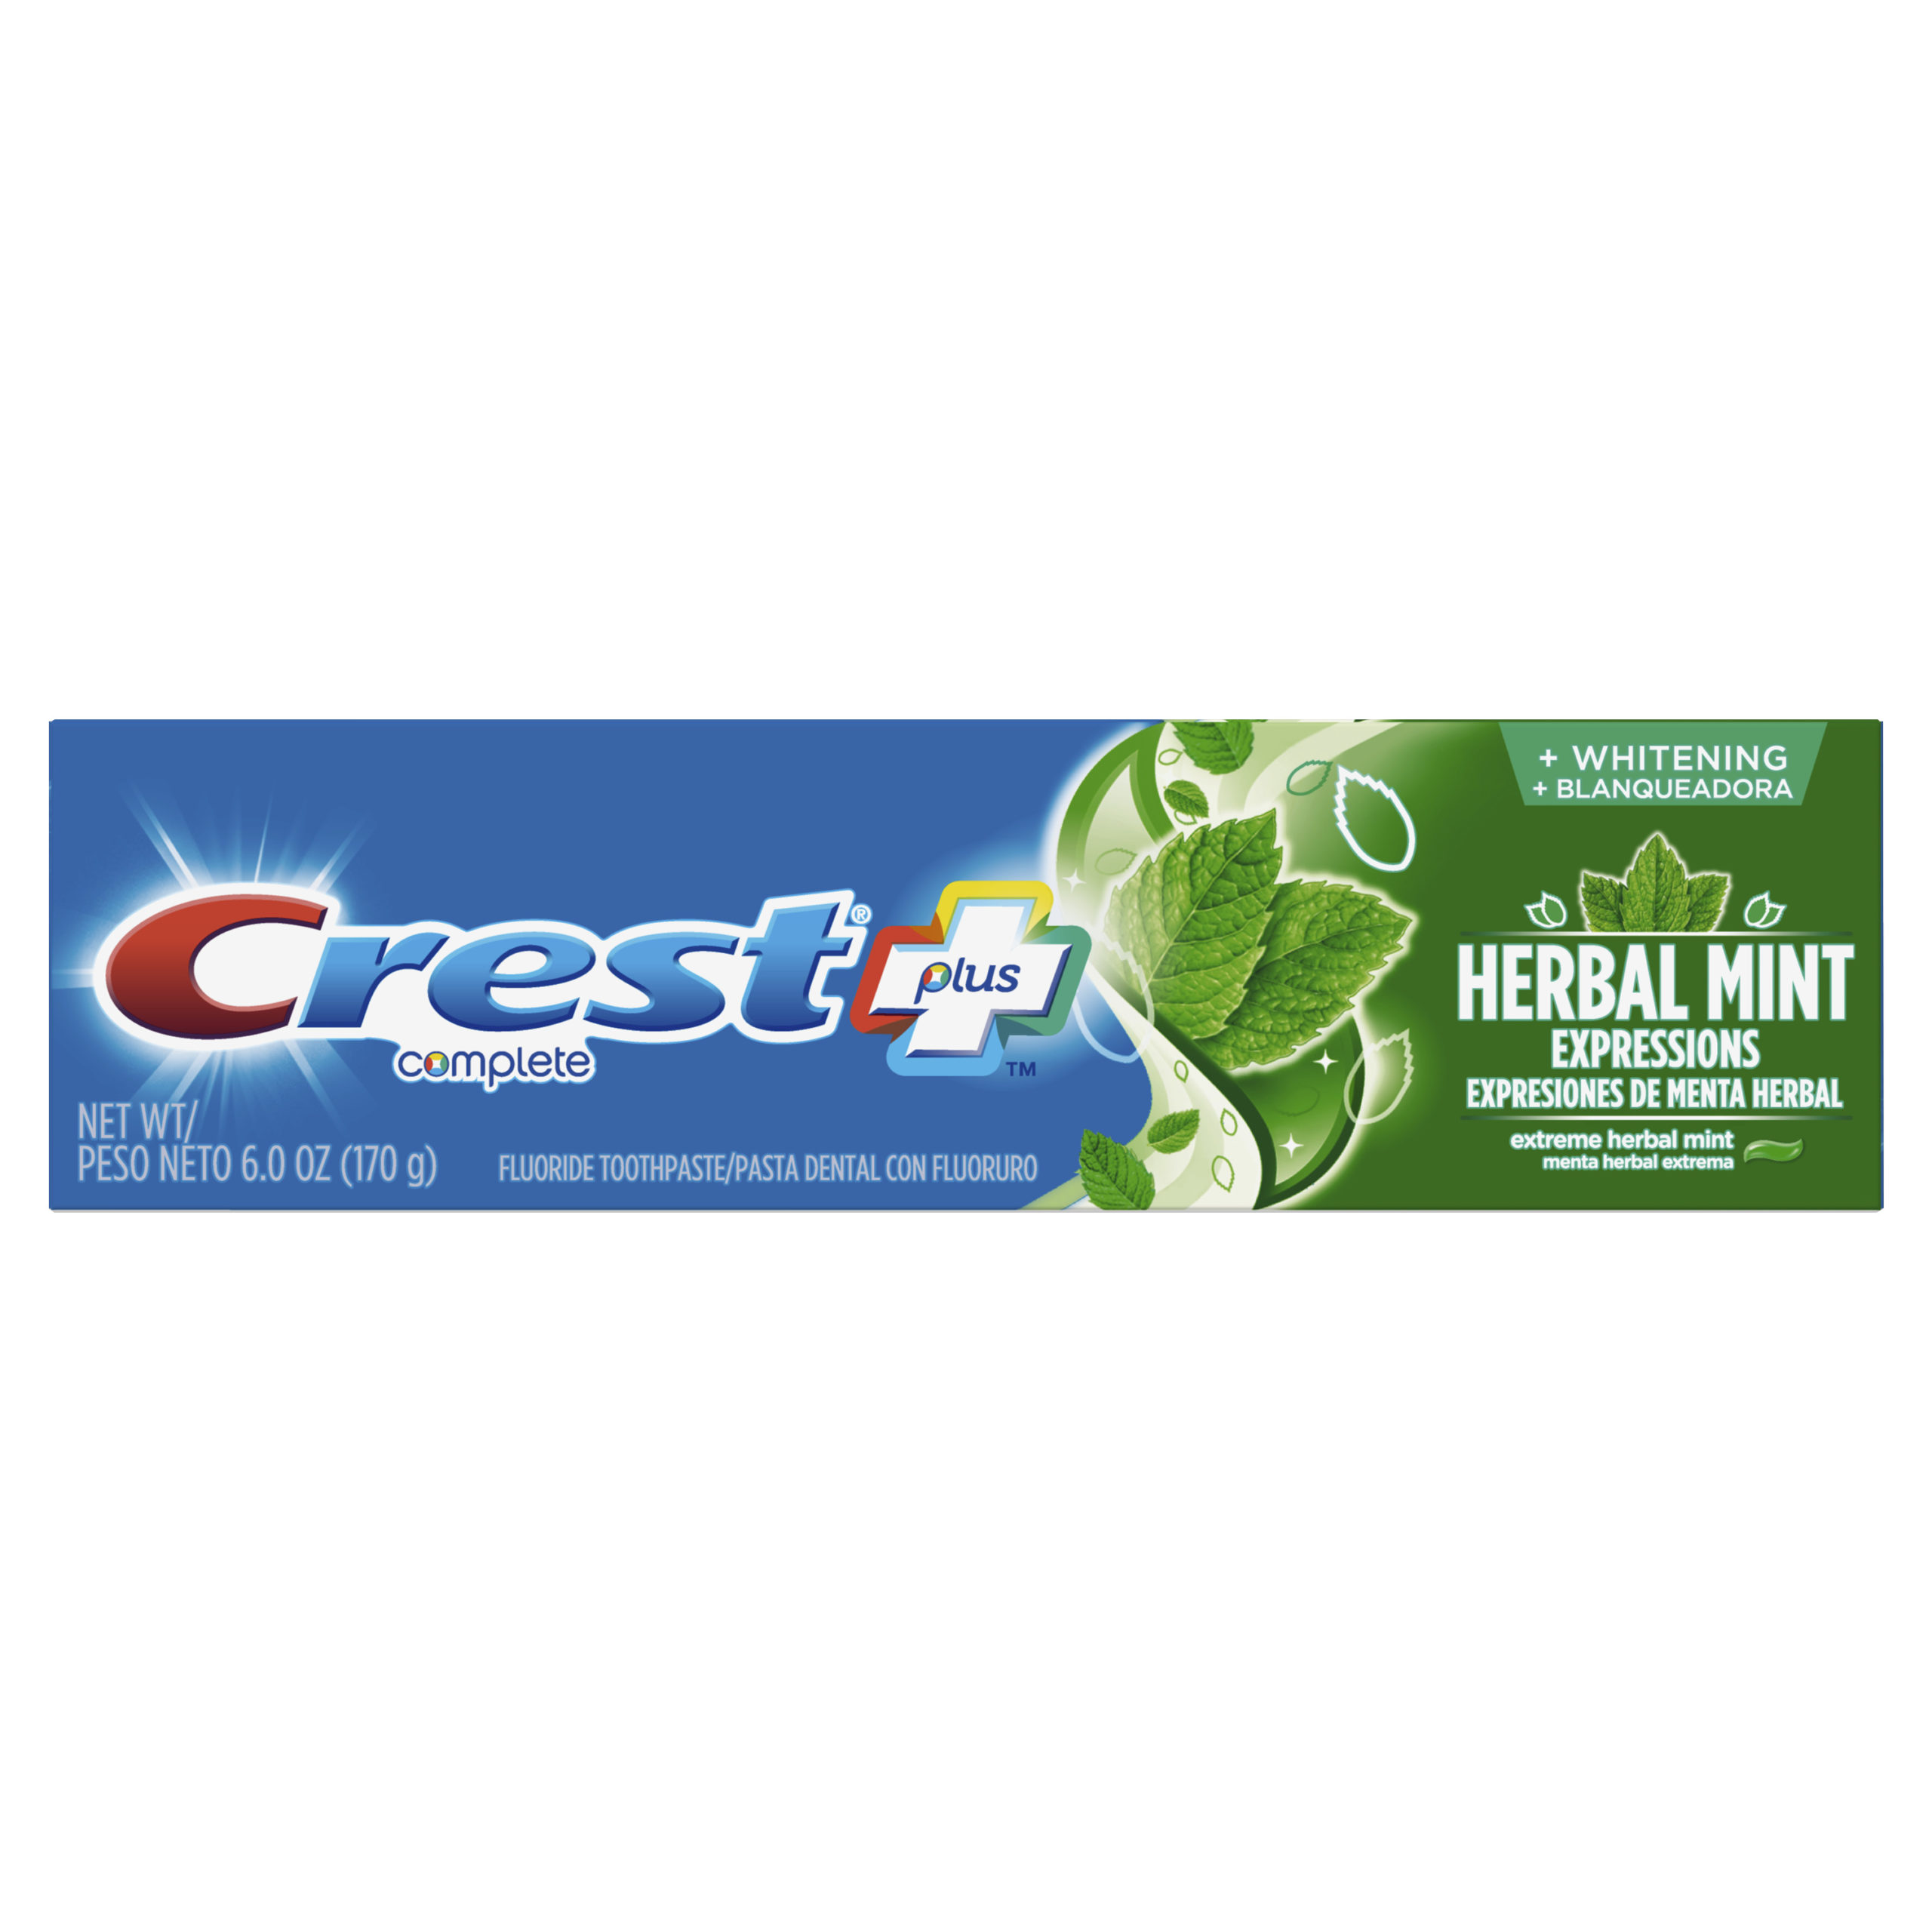 Crest Complete Whitening Plus Herbal Mint Expressions